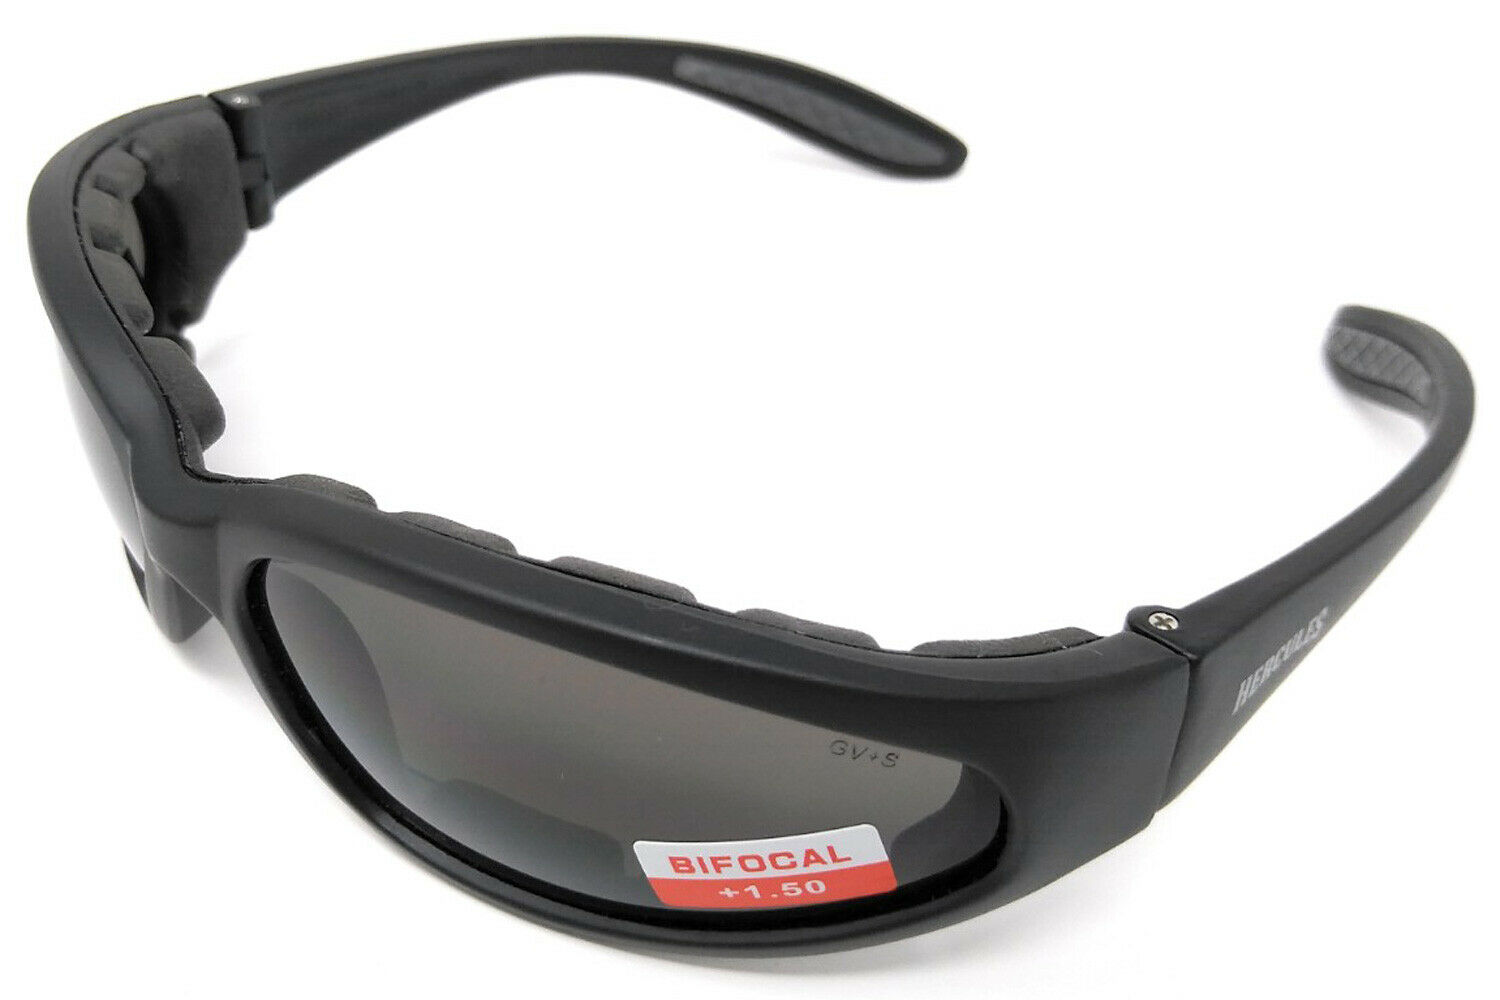 Pouch Shatterproof Category 3 Tint UV400 Motorcycle Sunglasses//Biker Glasses